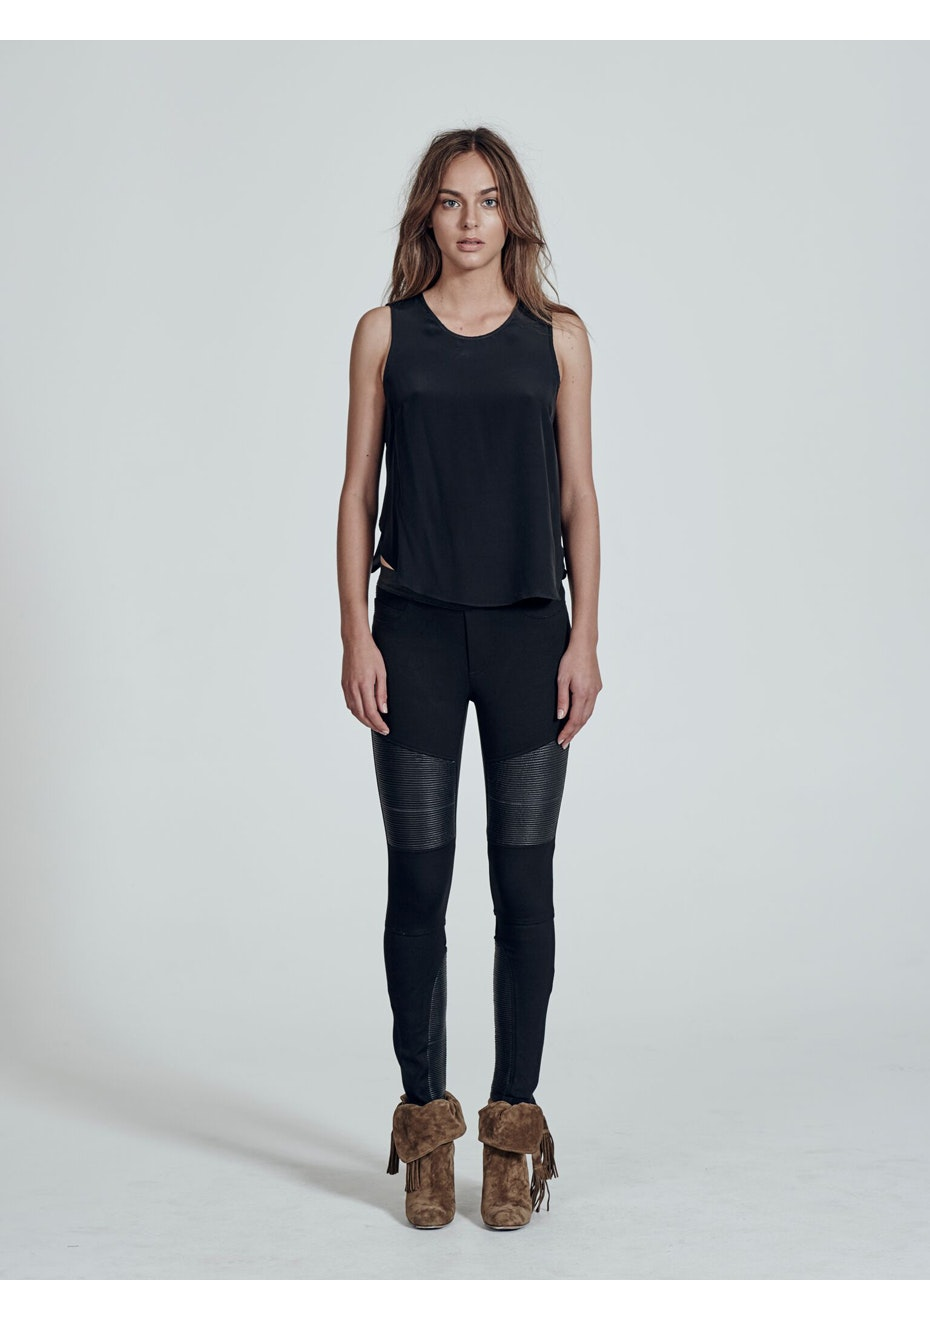 West 14th - Broadway Legging - Mix Material - Black